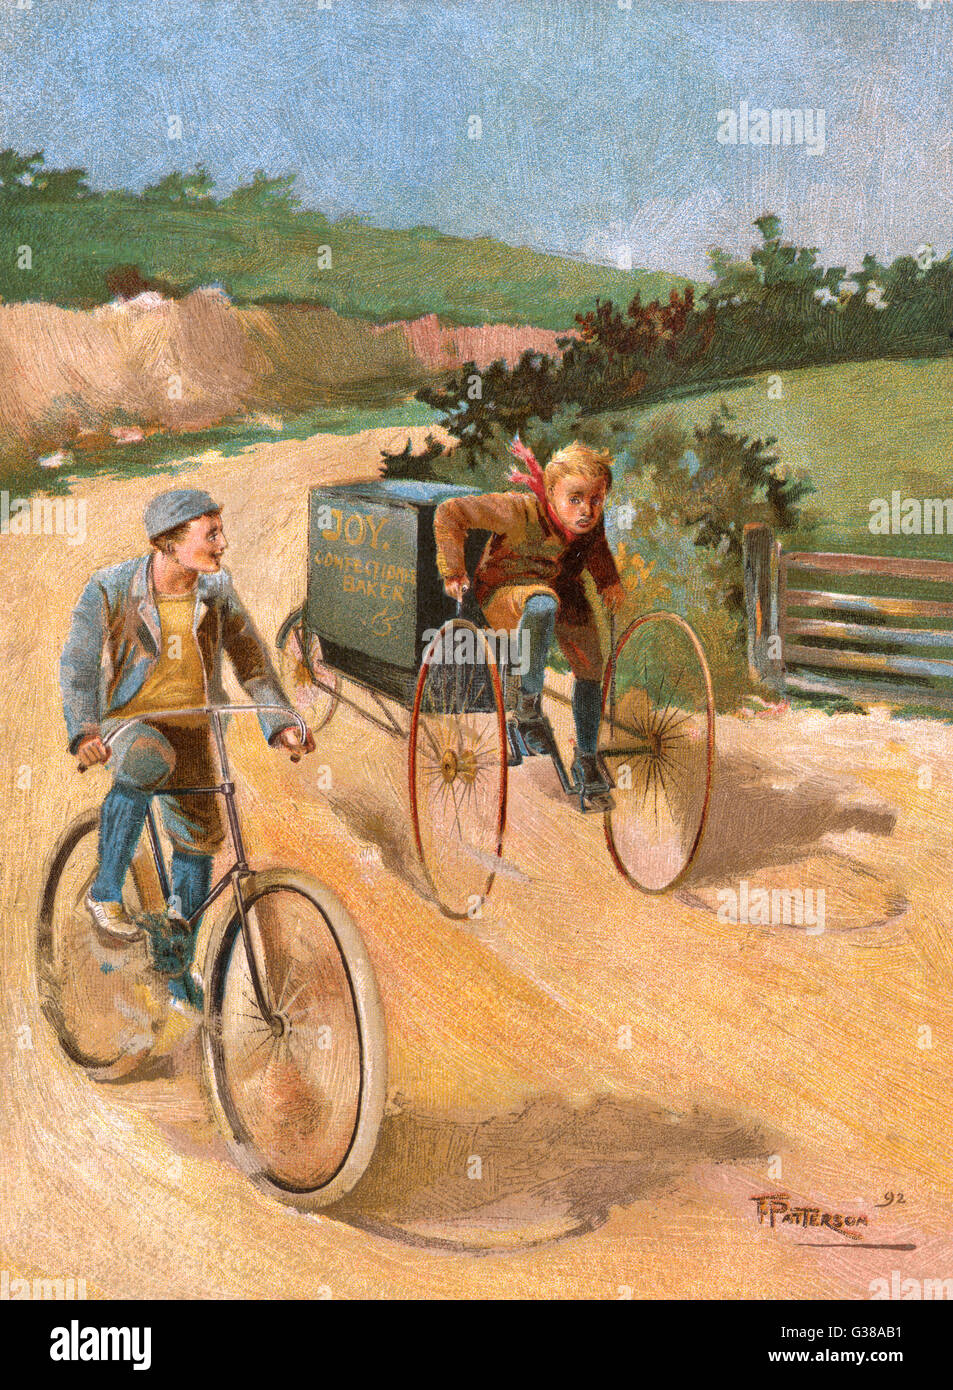 Two boys are cycling on a  country road.  One is on a  conventional bicycle, while  the other is an errand boy  - Stock Image